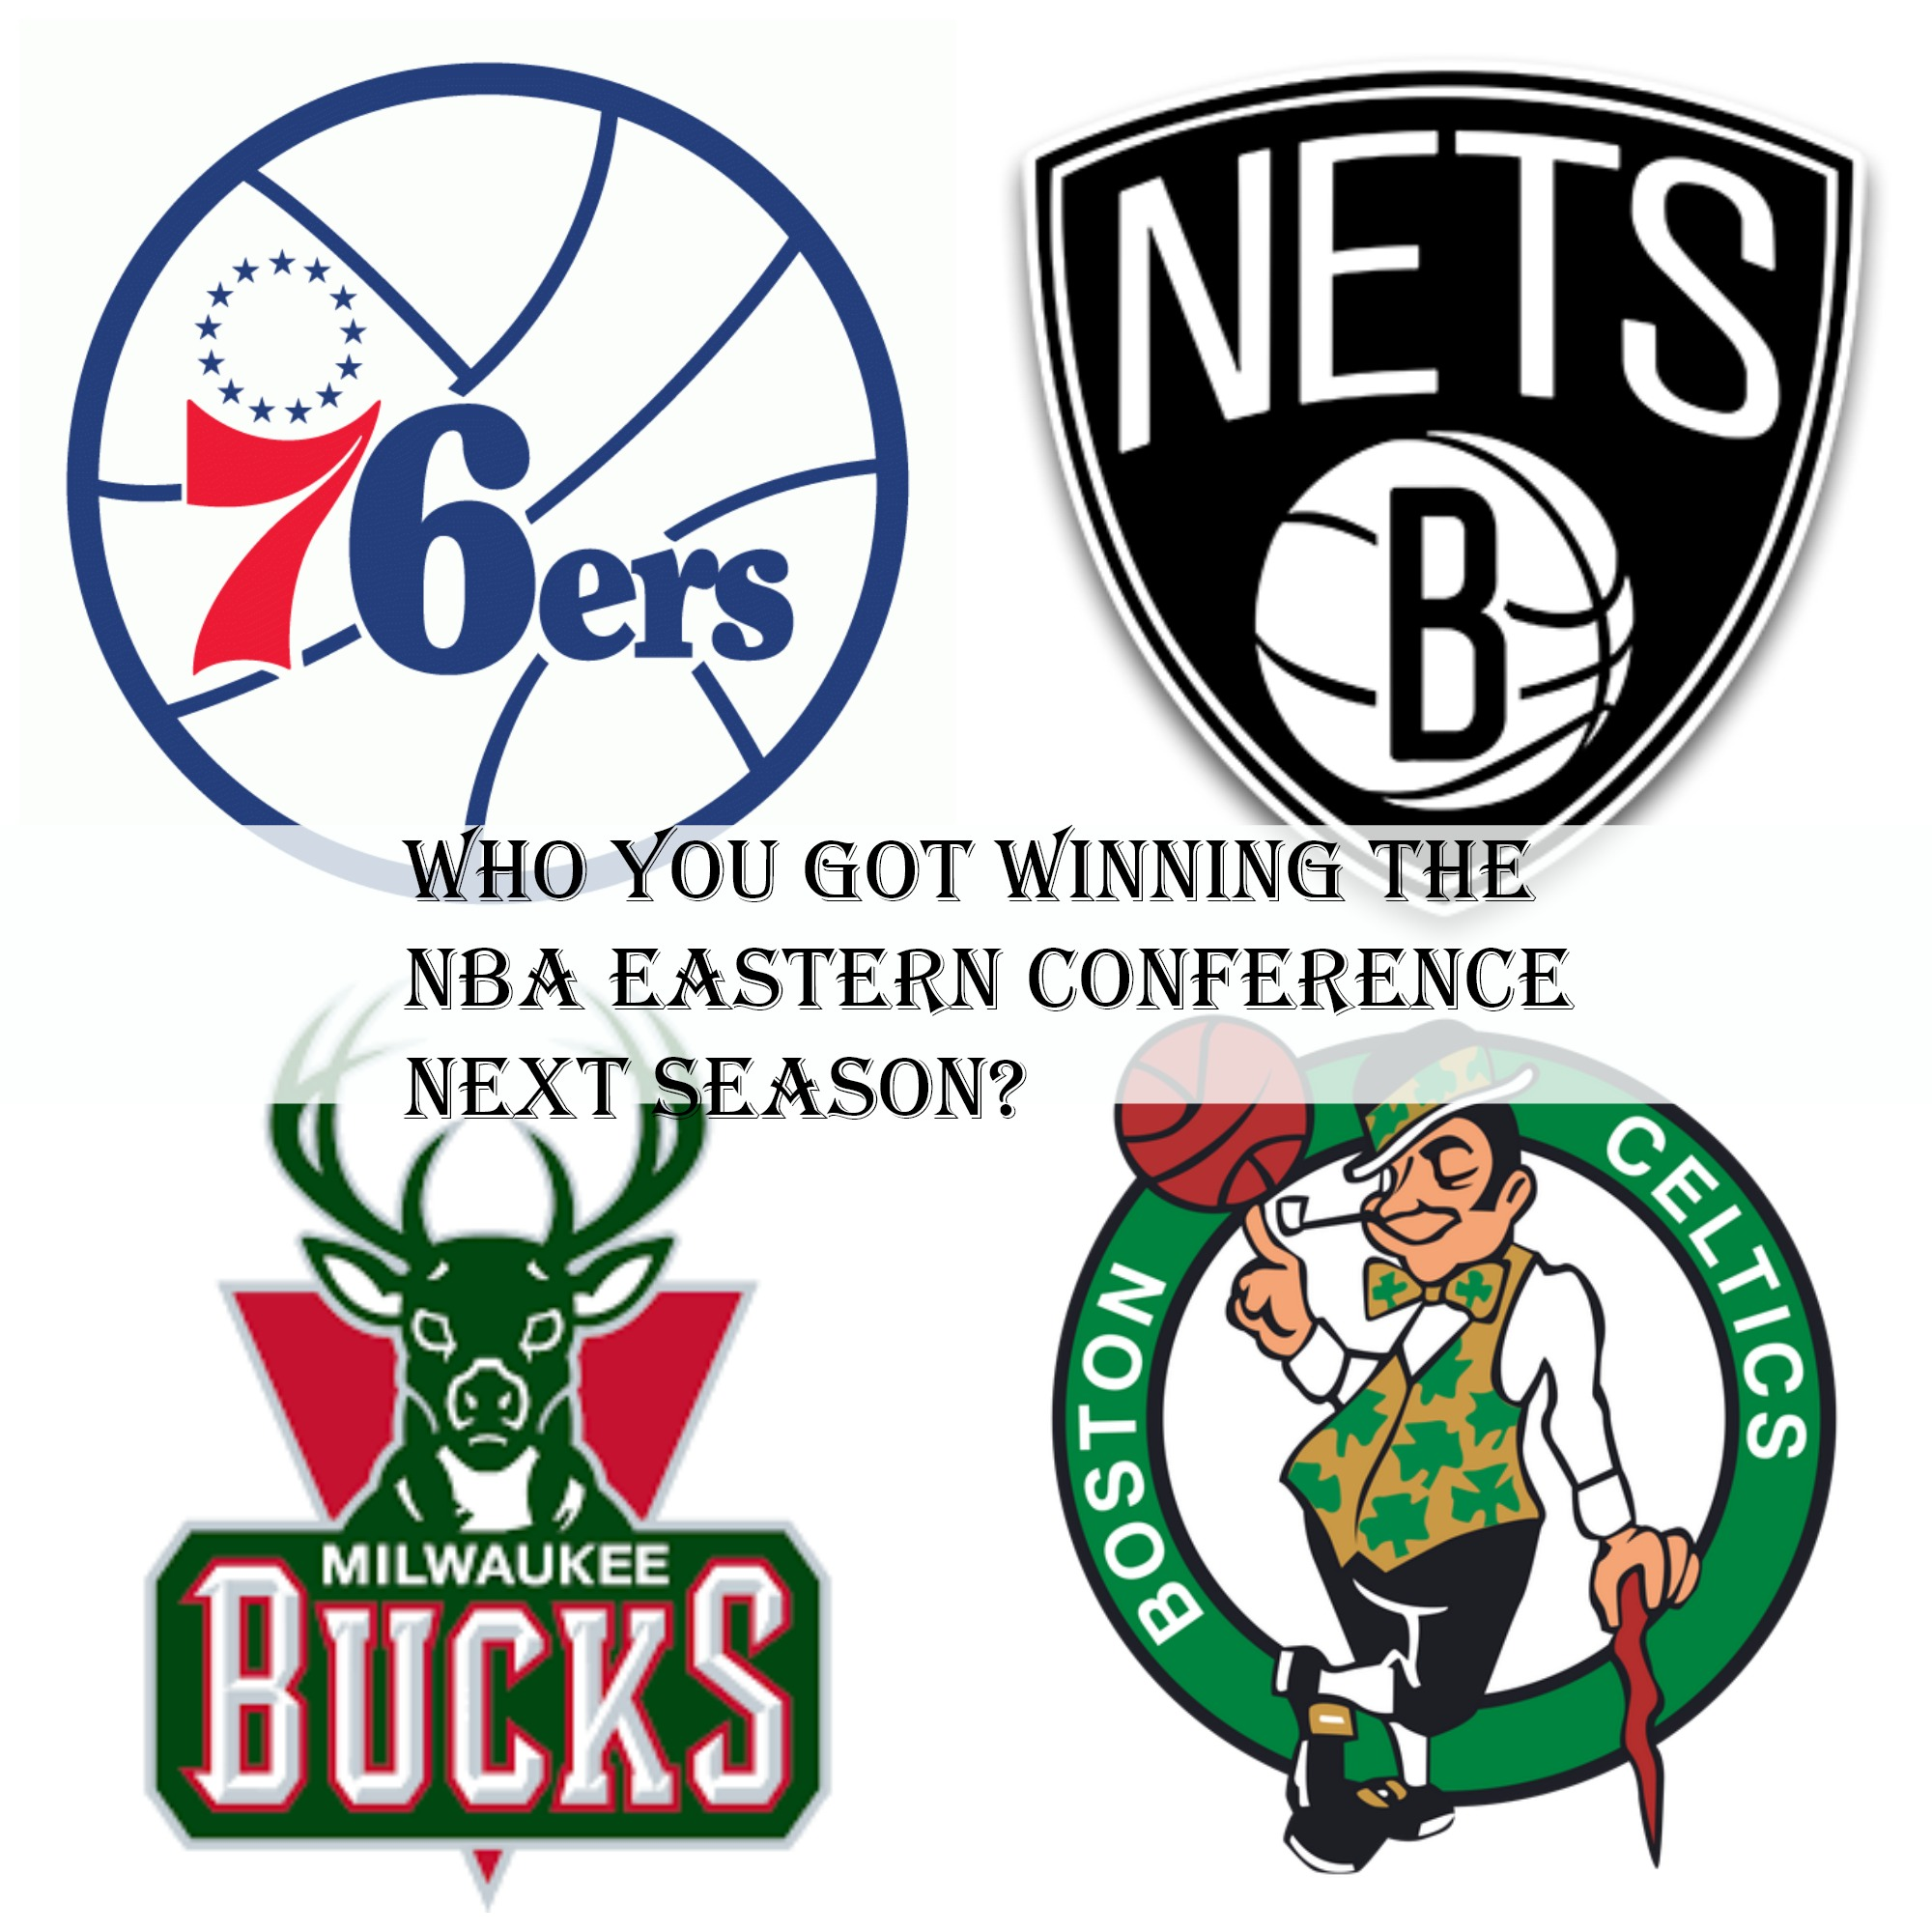 Who You Got Winning the NBA Eastern Conference Next Season?